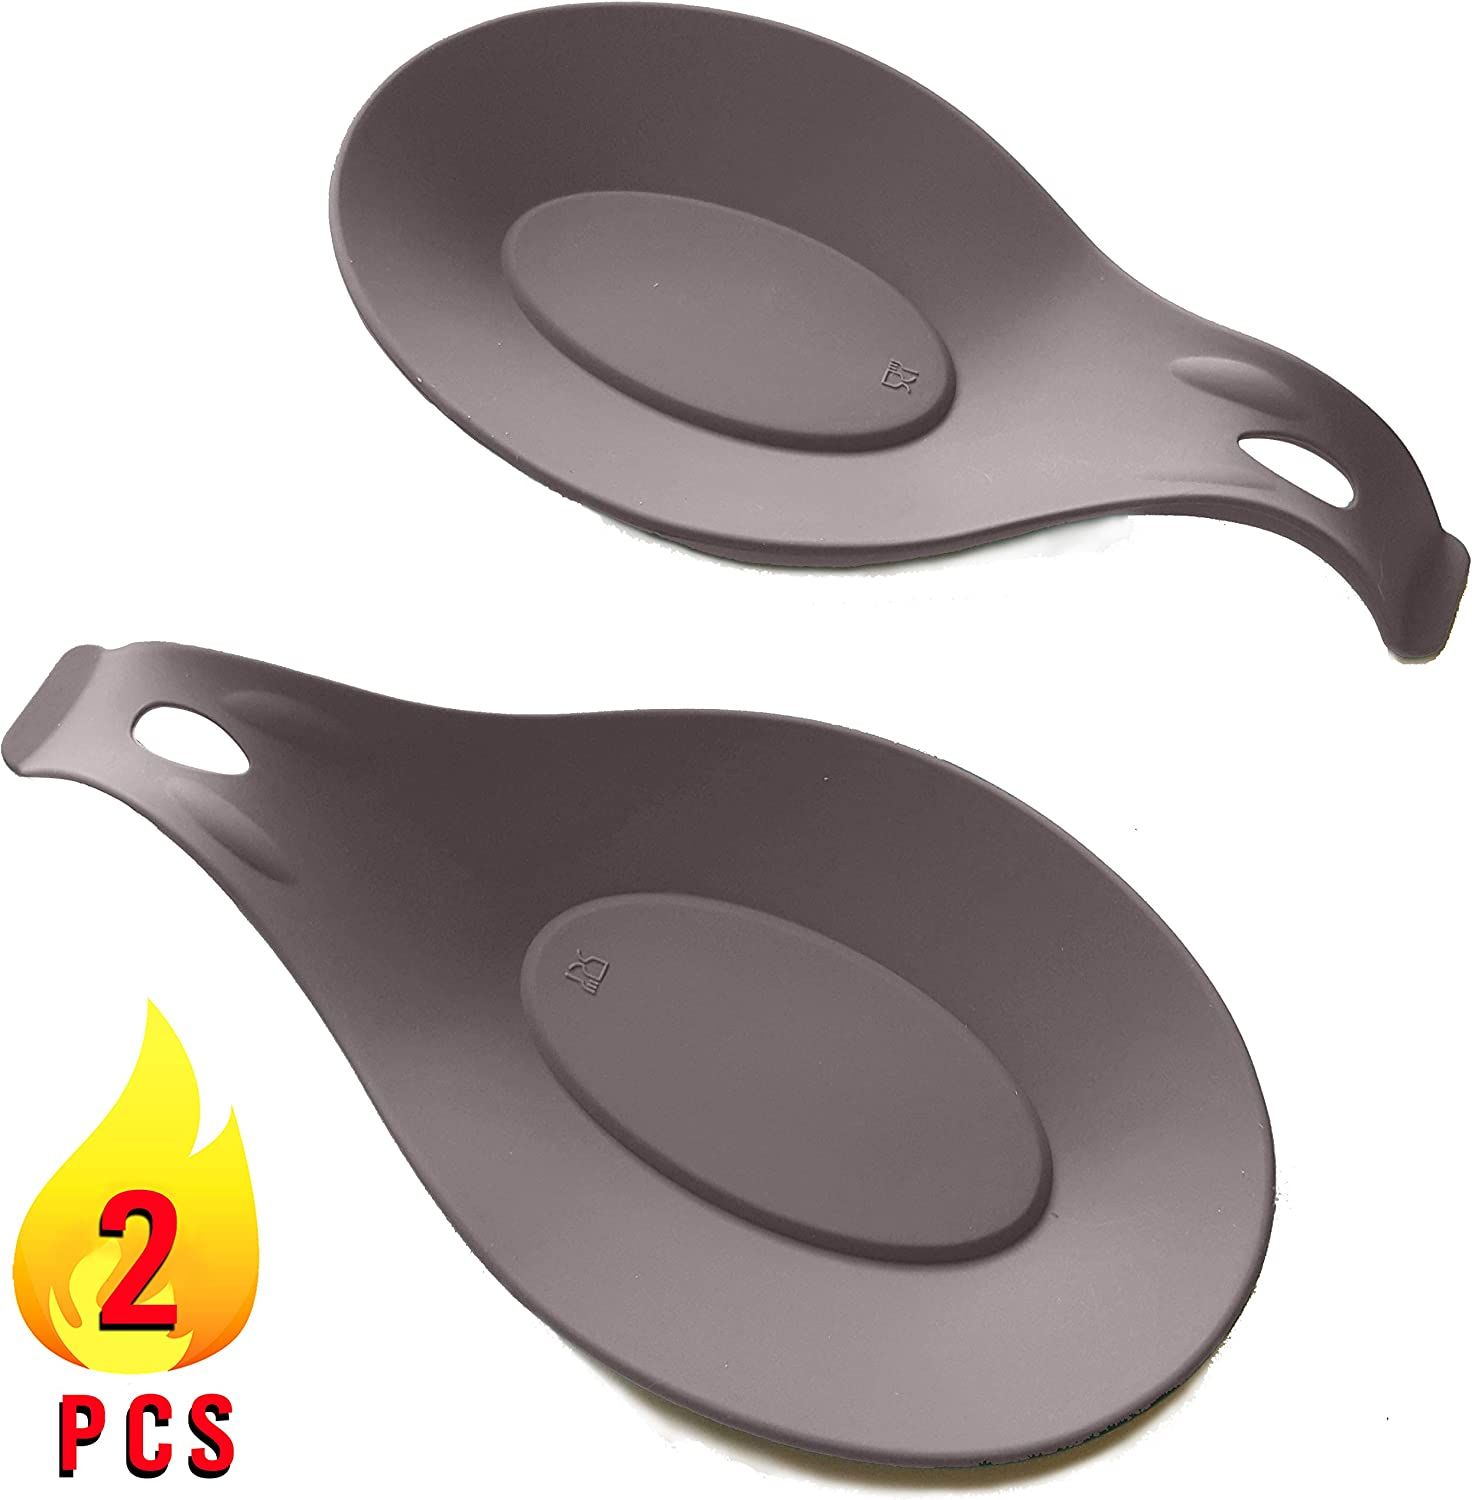 Silicone Spoon Rest 2 pcs Set | Spoon Holder For Stove Top | Spoon Rest For Stove Top | Spoon Rests For Kitchen Utensils | Spatula Holder | Utensil Rest | Cooking Spoon Holder| Heat Resistant Silicon